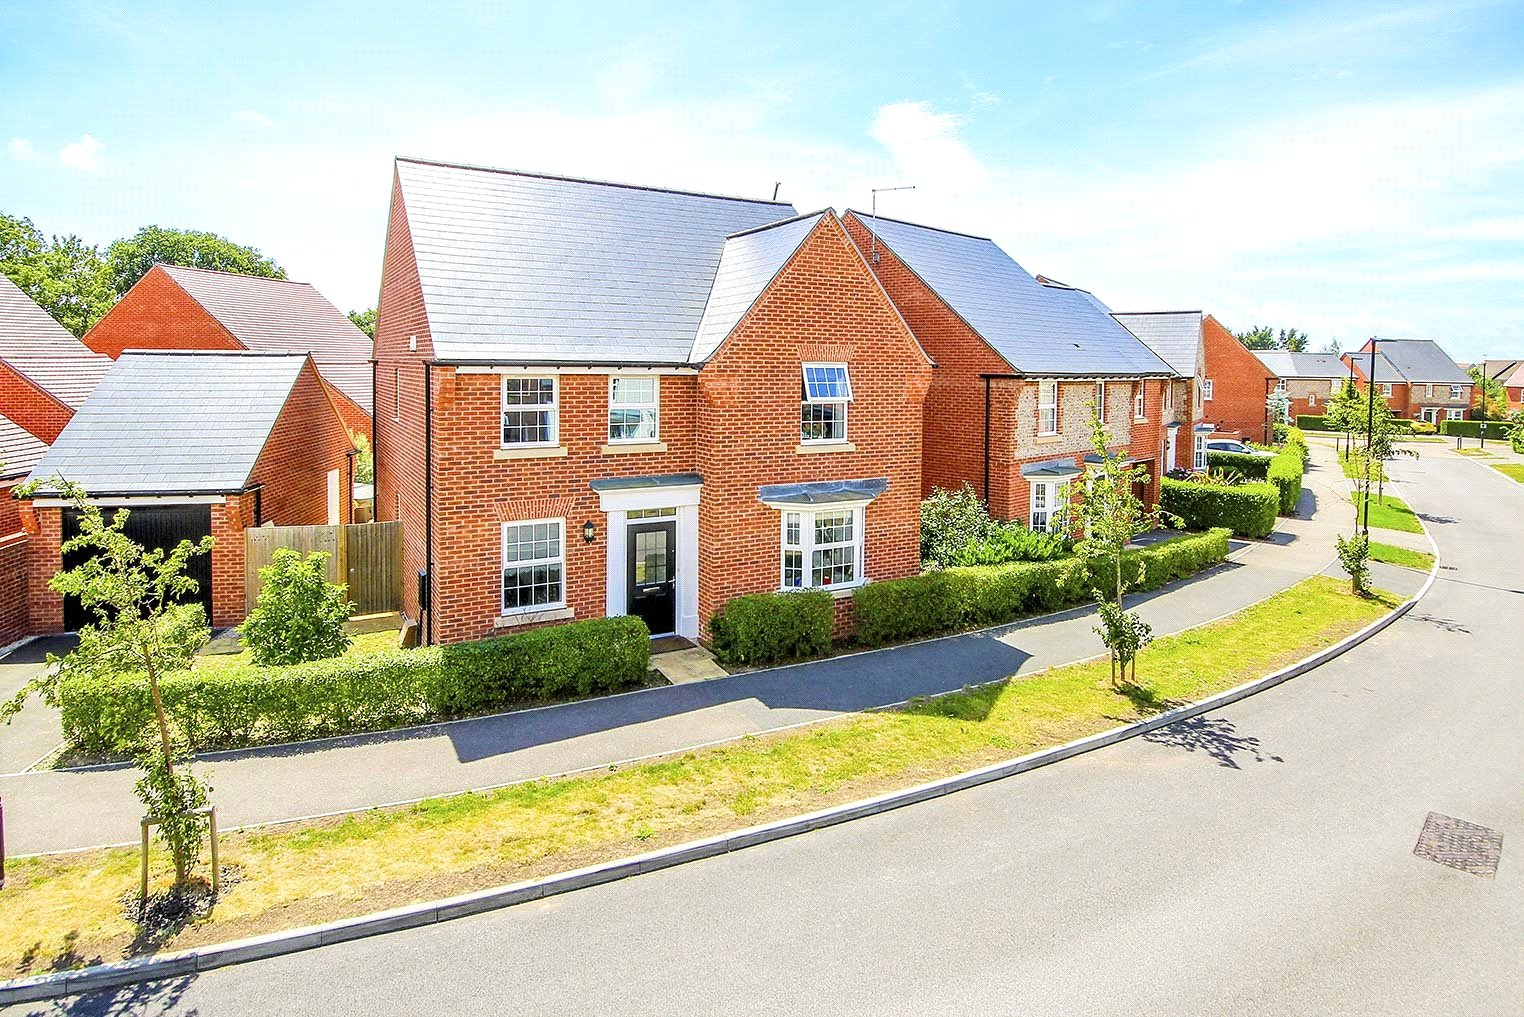 4 bed house for sale in Nanson Lane, Swanbourne Park, Angmering, BN16